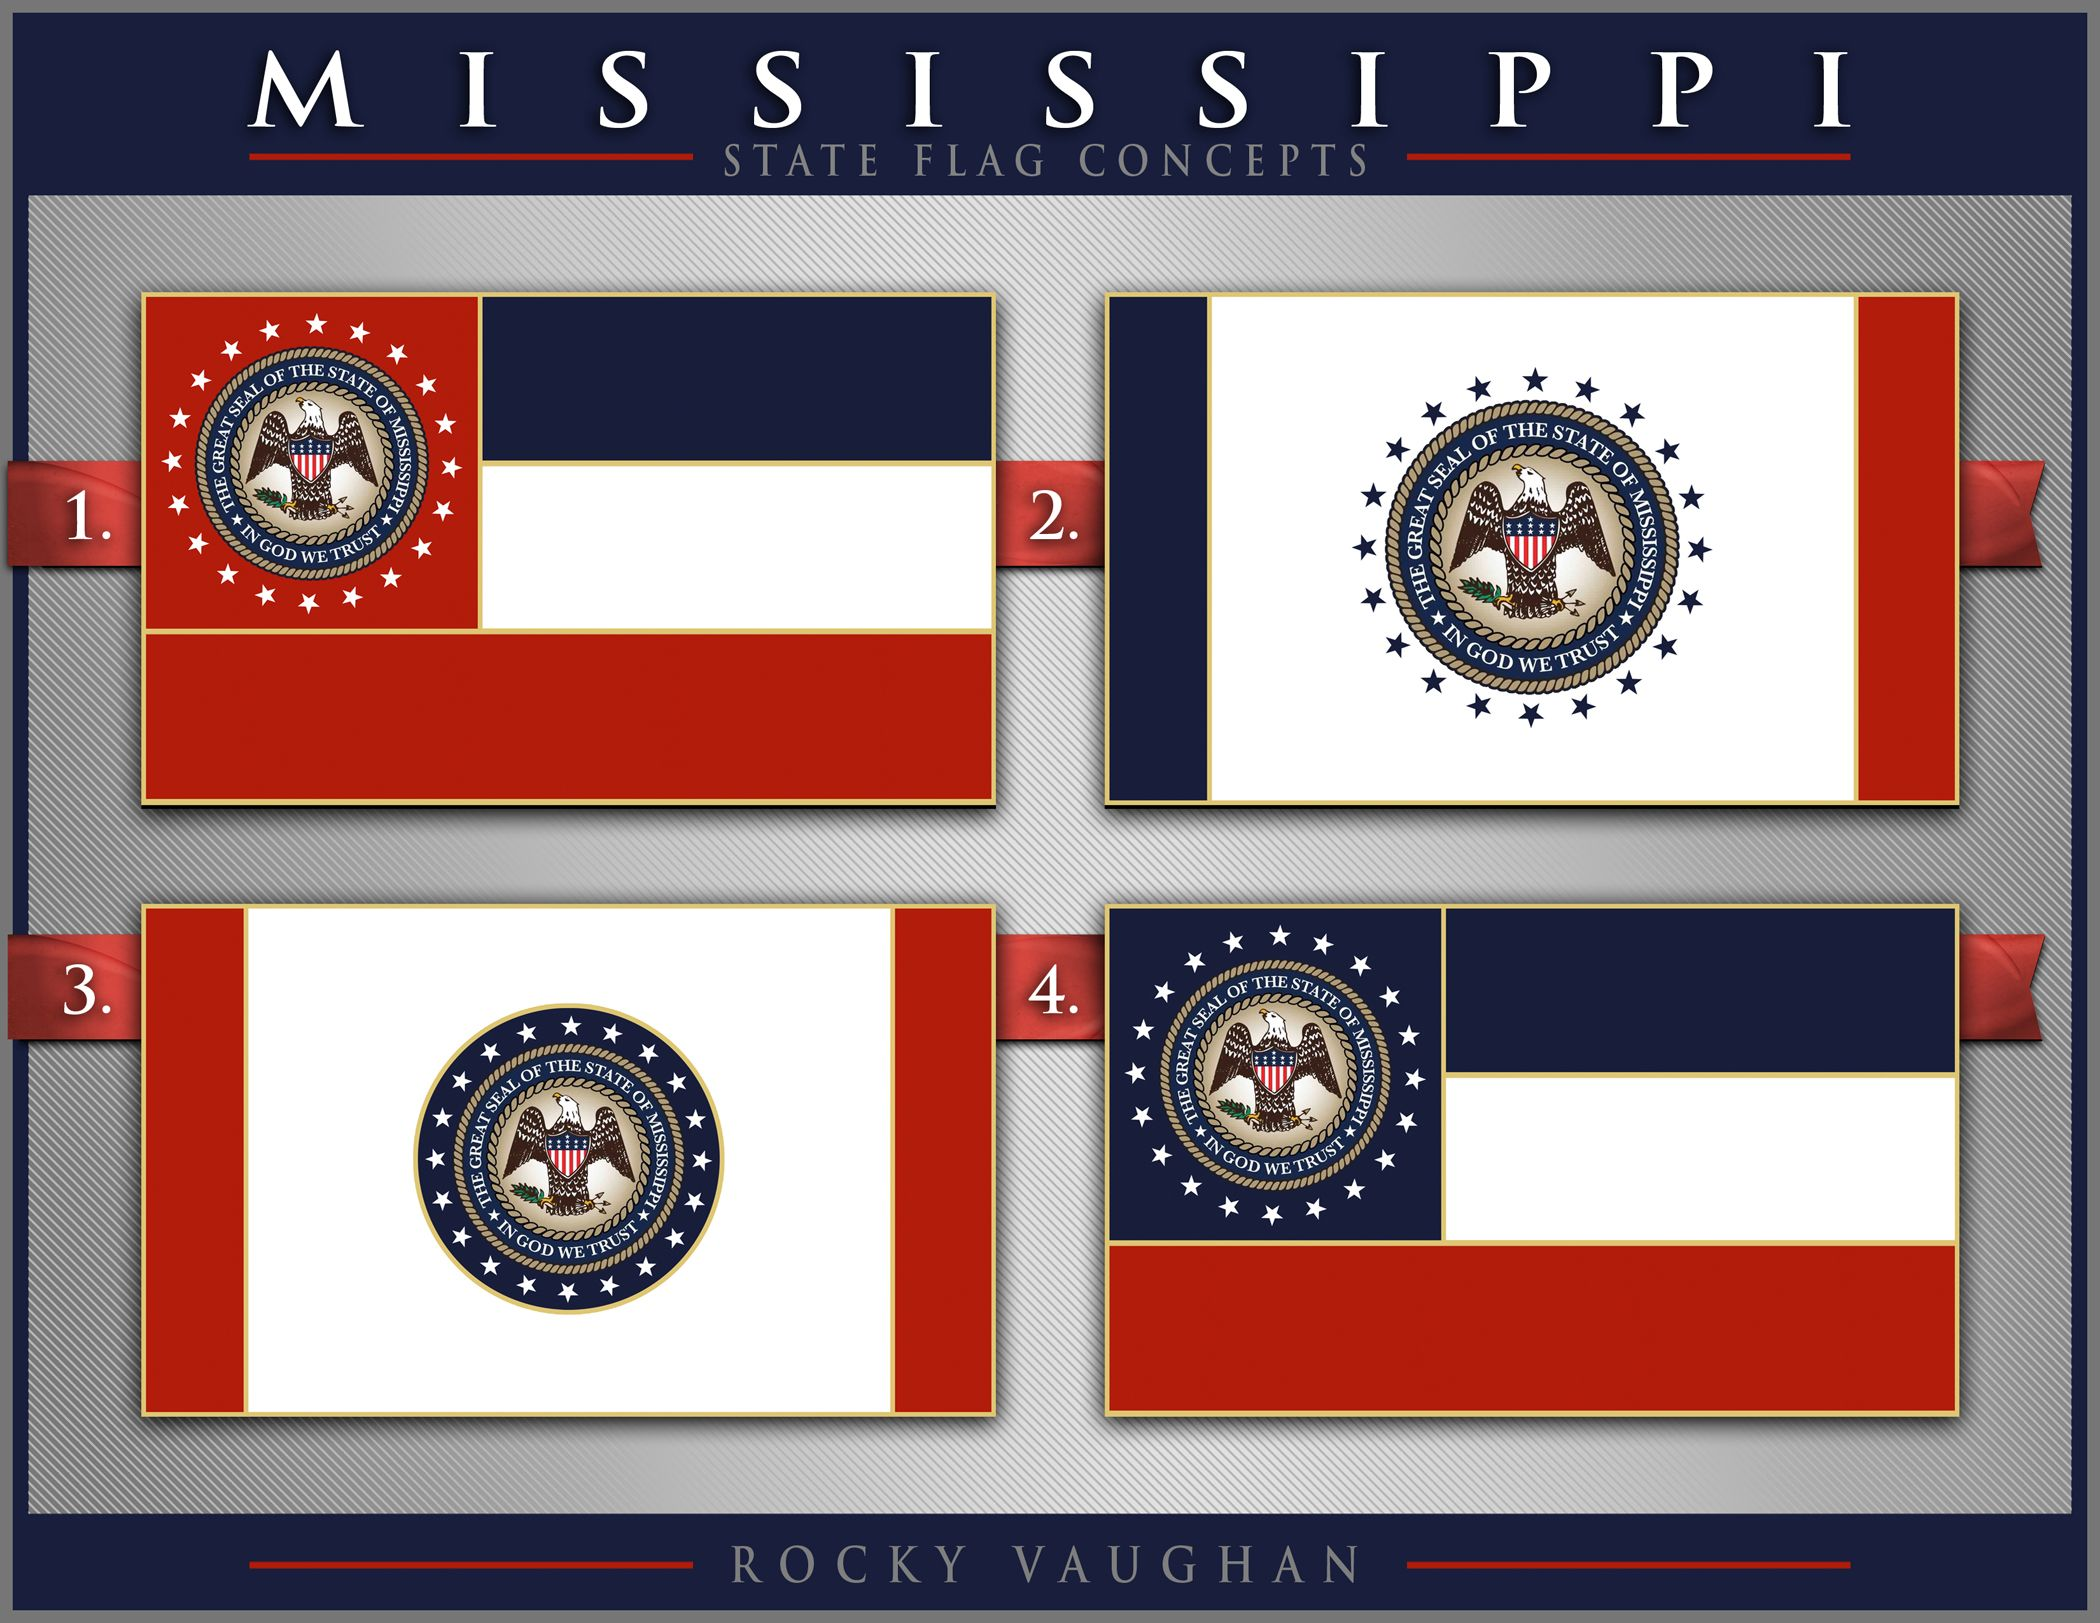 Pin By Ben Tackett On Mississippi Flag Concepts Mississippi Flag Flag Design State Flags